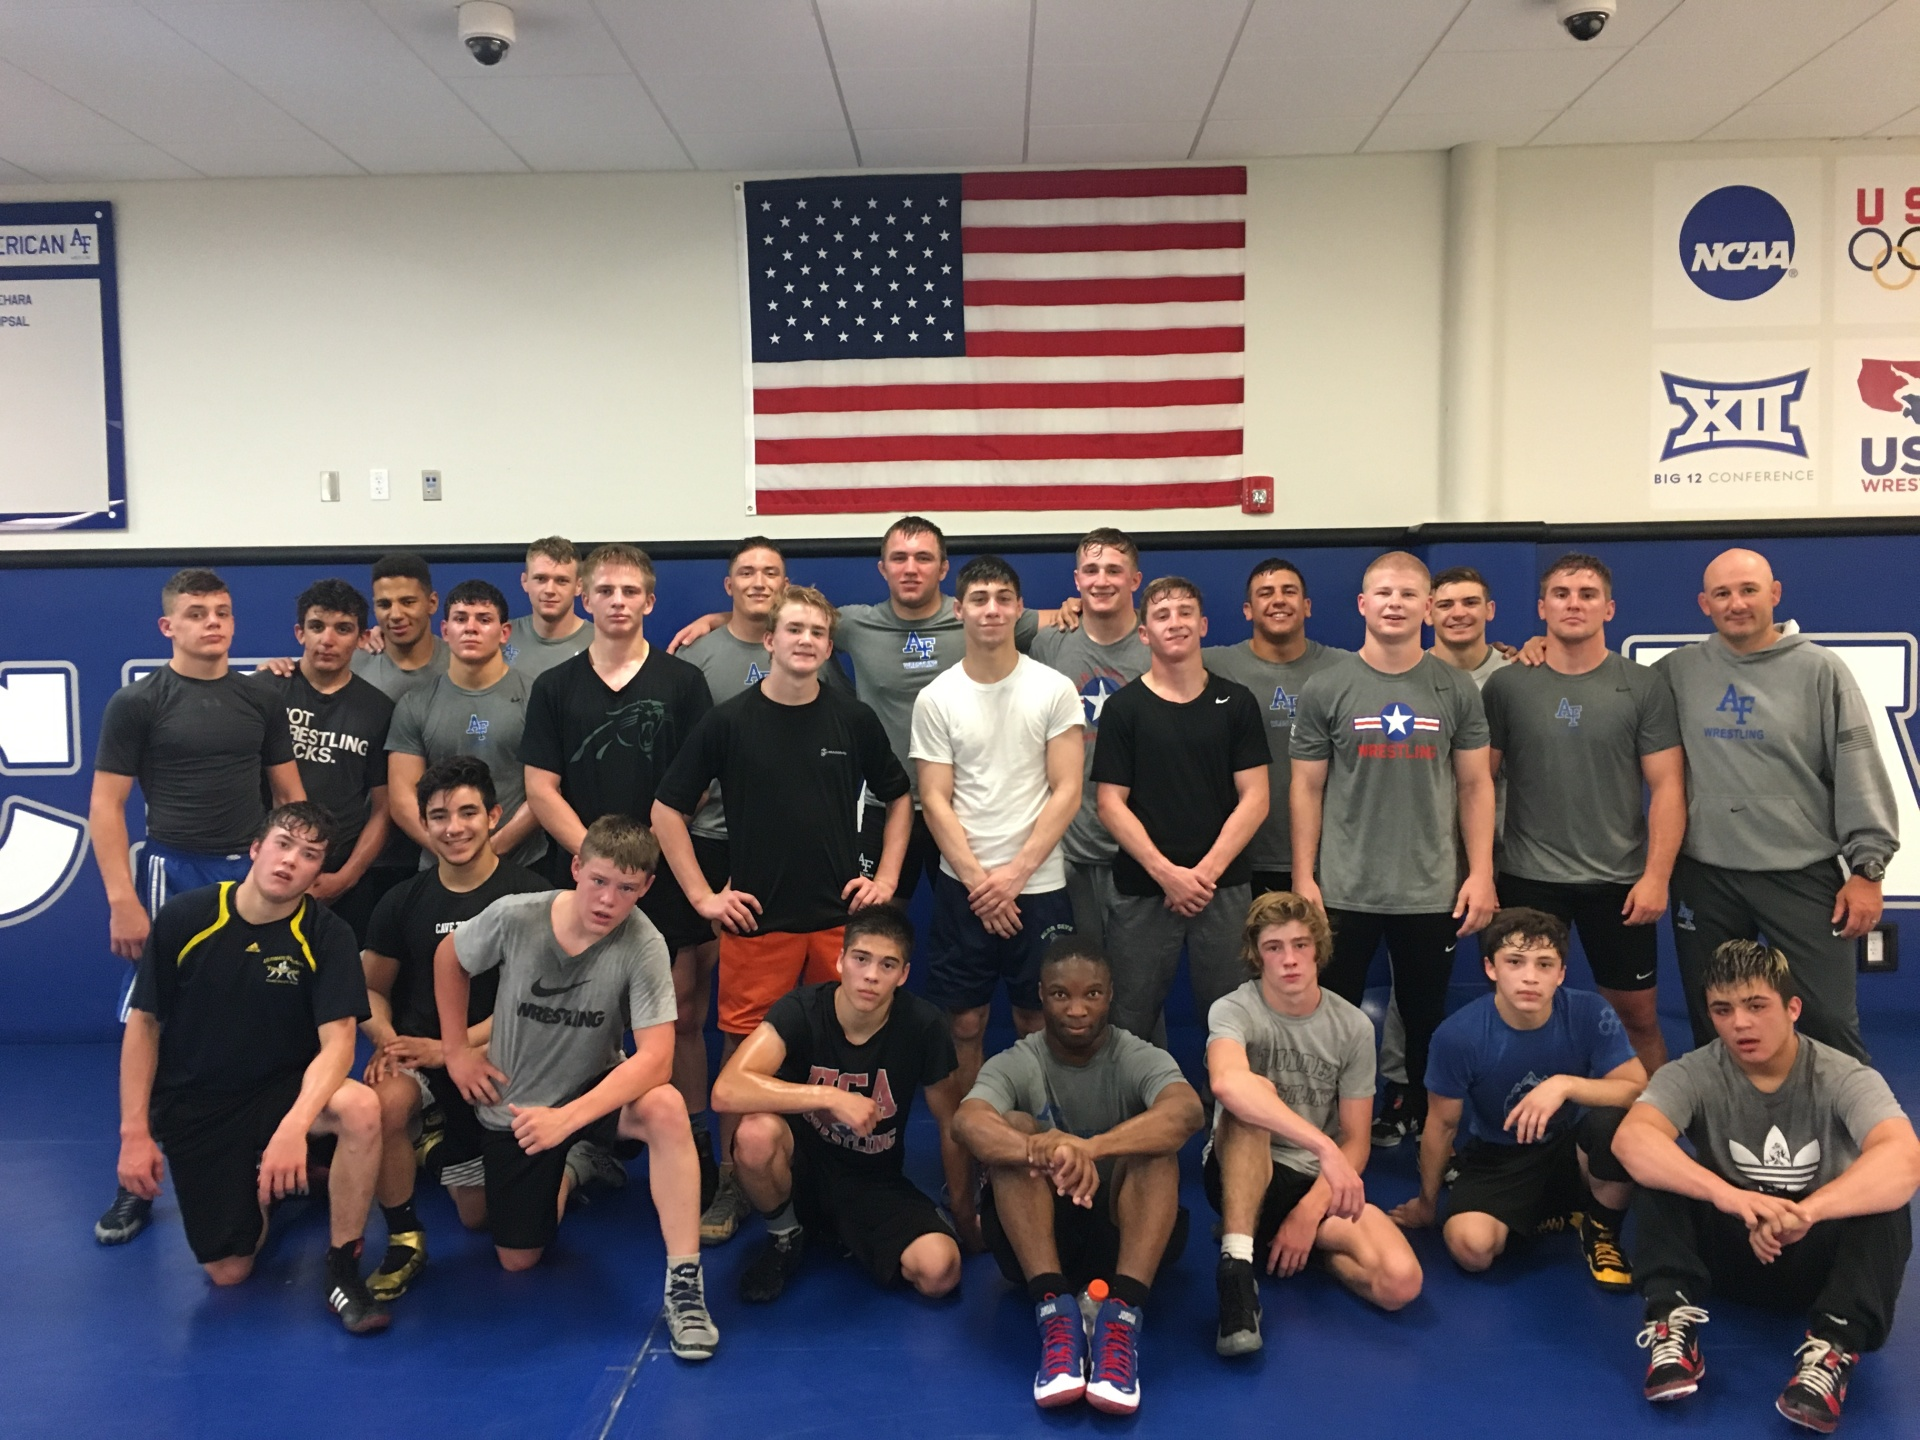 Bear Cave teams up with the Air Force Regional Training Center